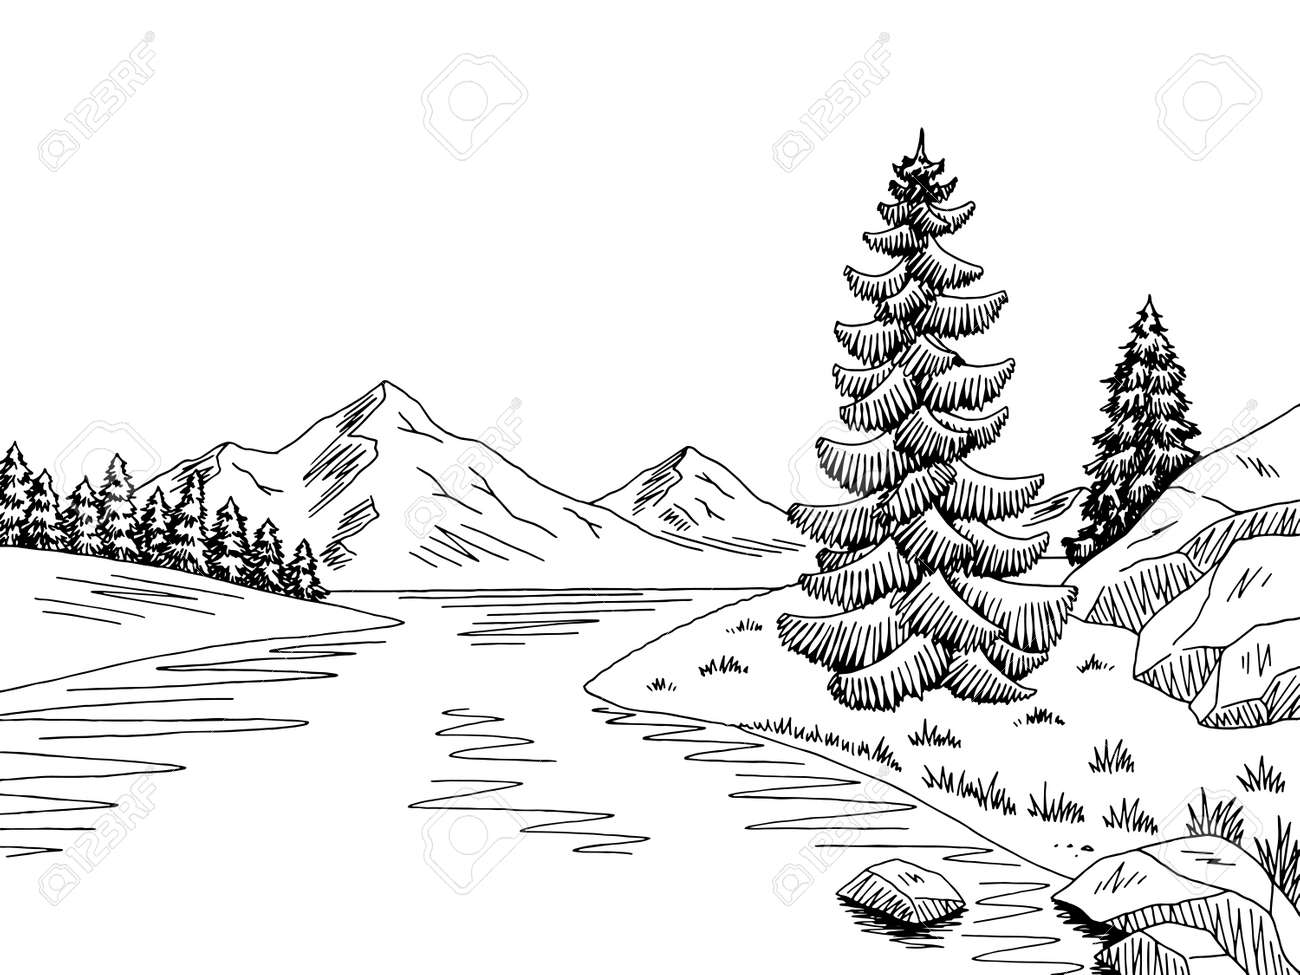 mountain river graphic black white landscape sketch illustration royalty free cliparts vectors and stock illustration image 81007900 mountain river graphic black white landscape sketch illustration